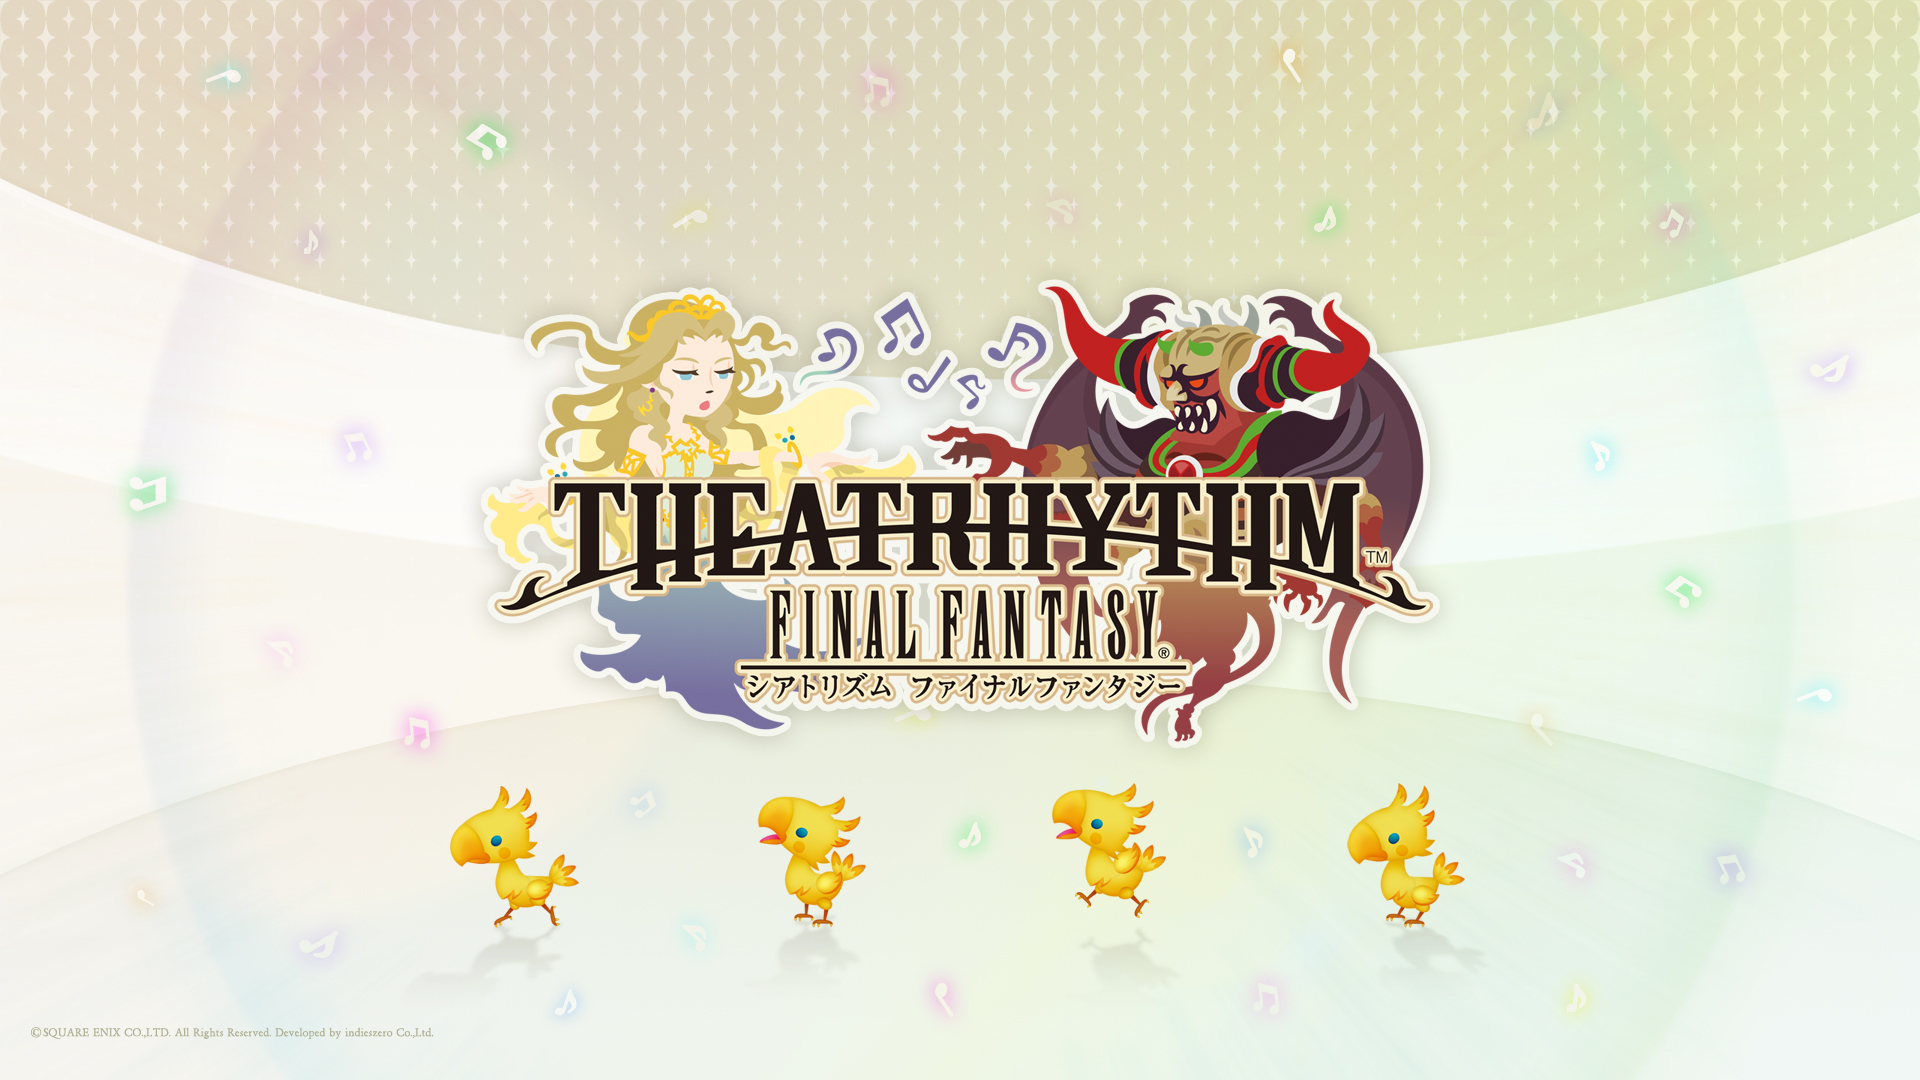 Theatrhythm Receives More FF Characters